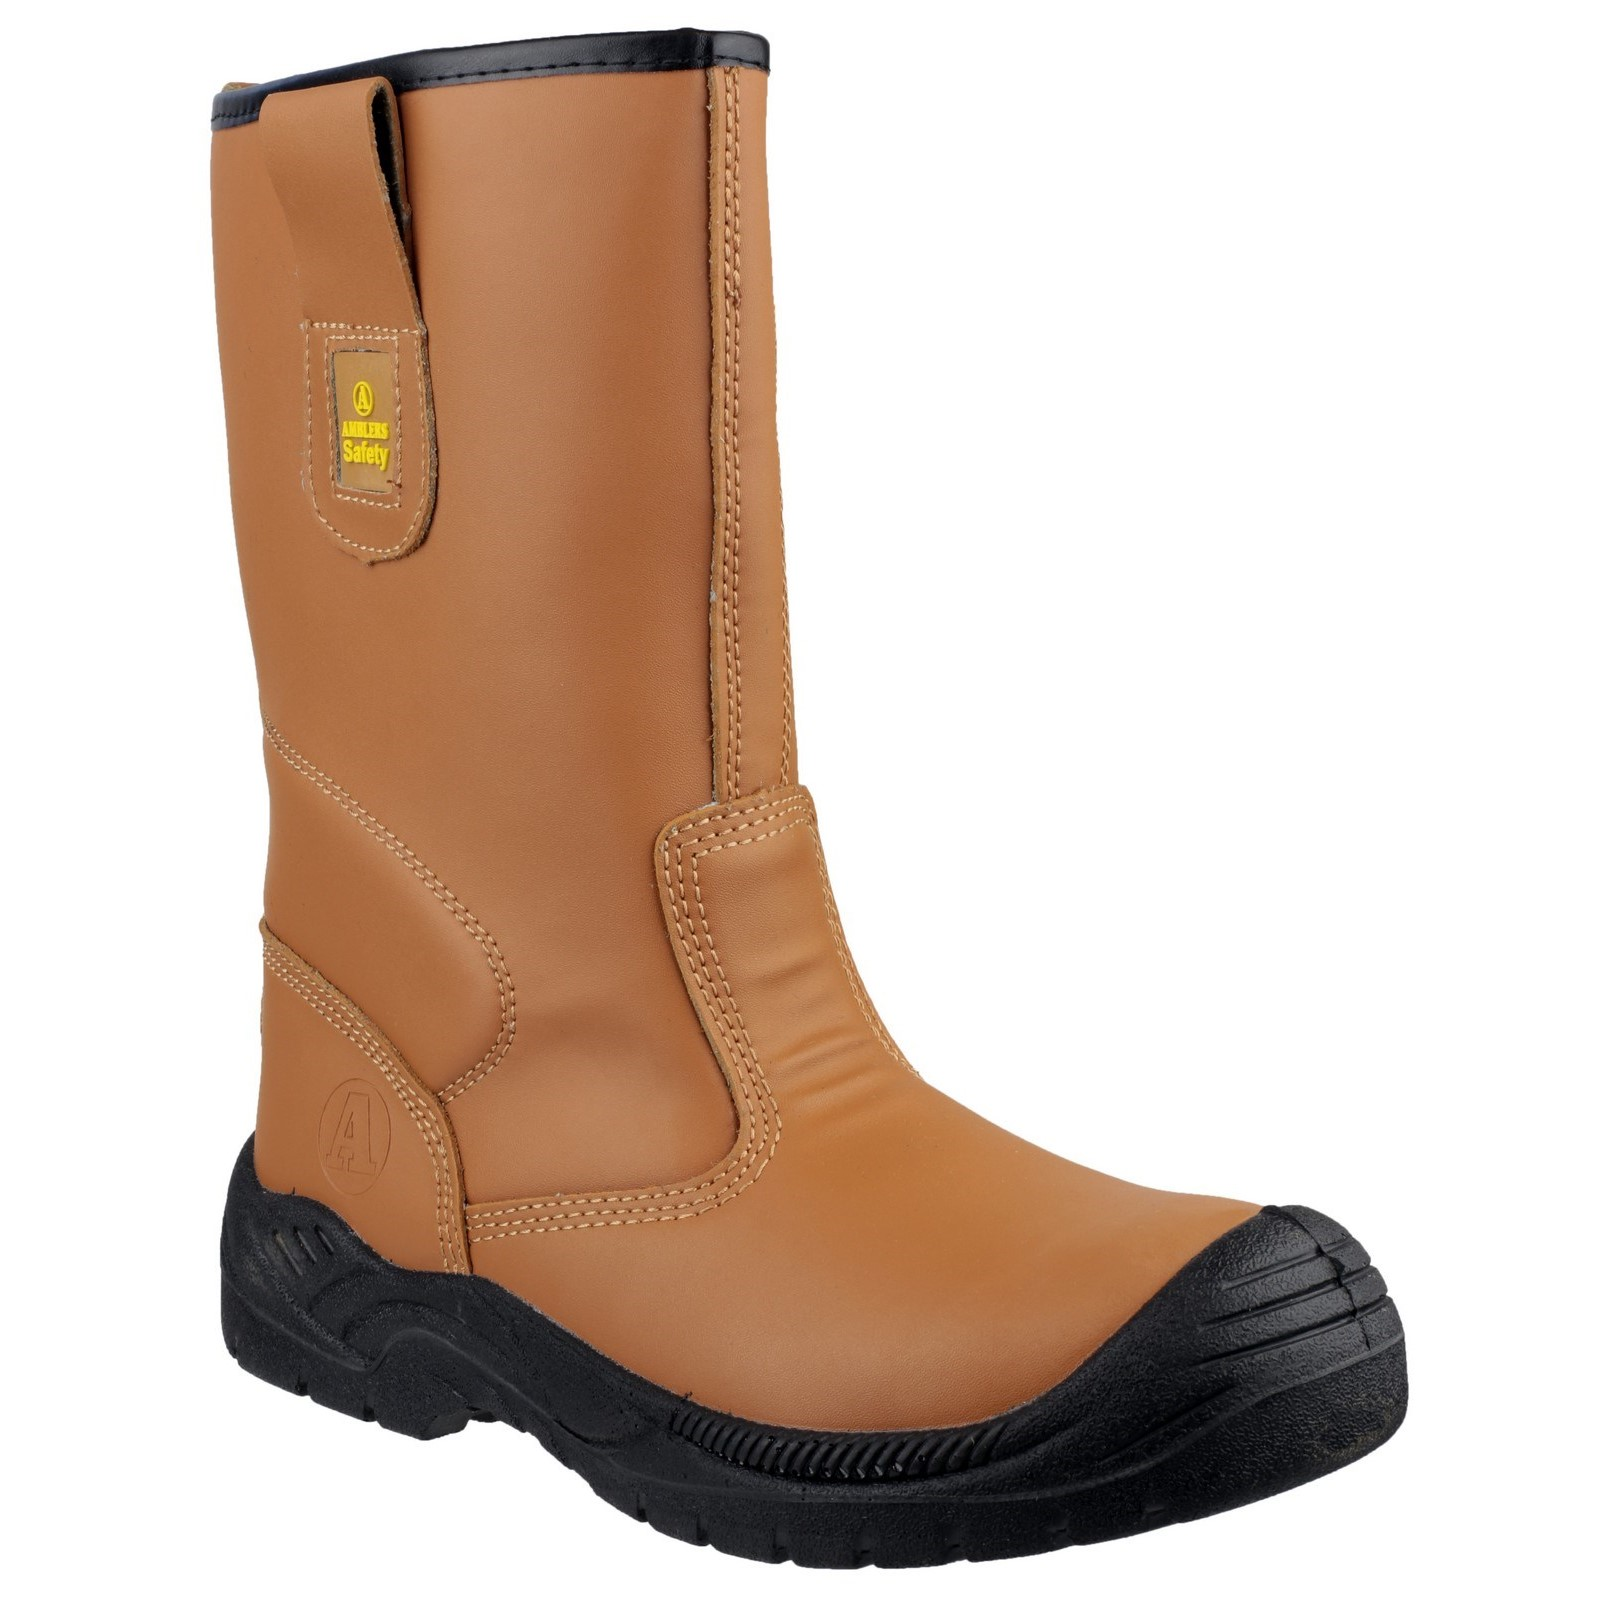 Amblers Safety Mens FS142 Water Resistant Pull On Safety Rigger Boot